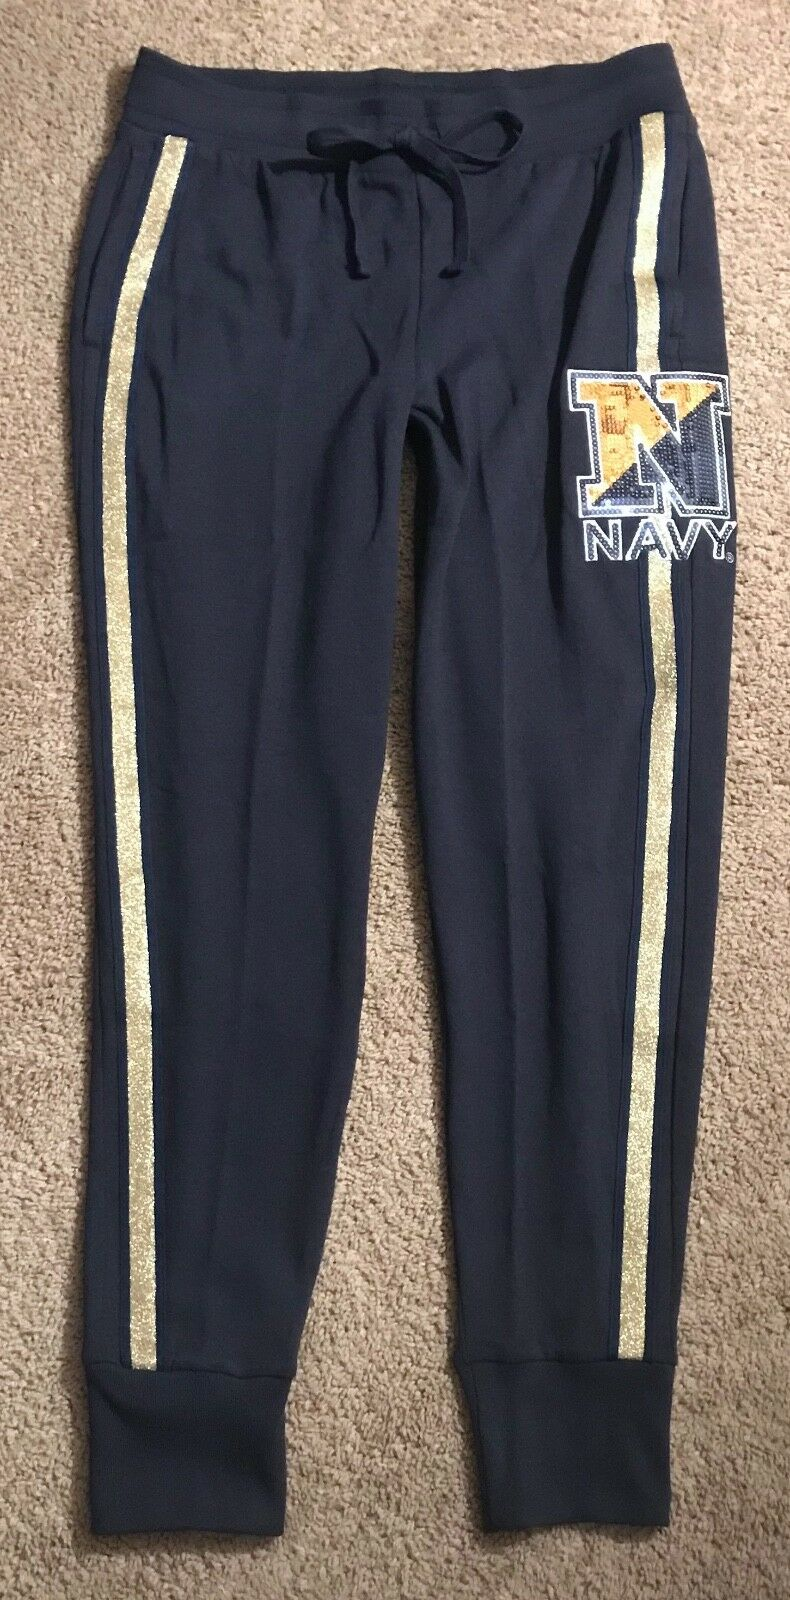 NWT VICTORIA'S SECRET PINK U.S. NAVY blueE gold STRIPE BLING JOGGER SWEATPANTS